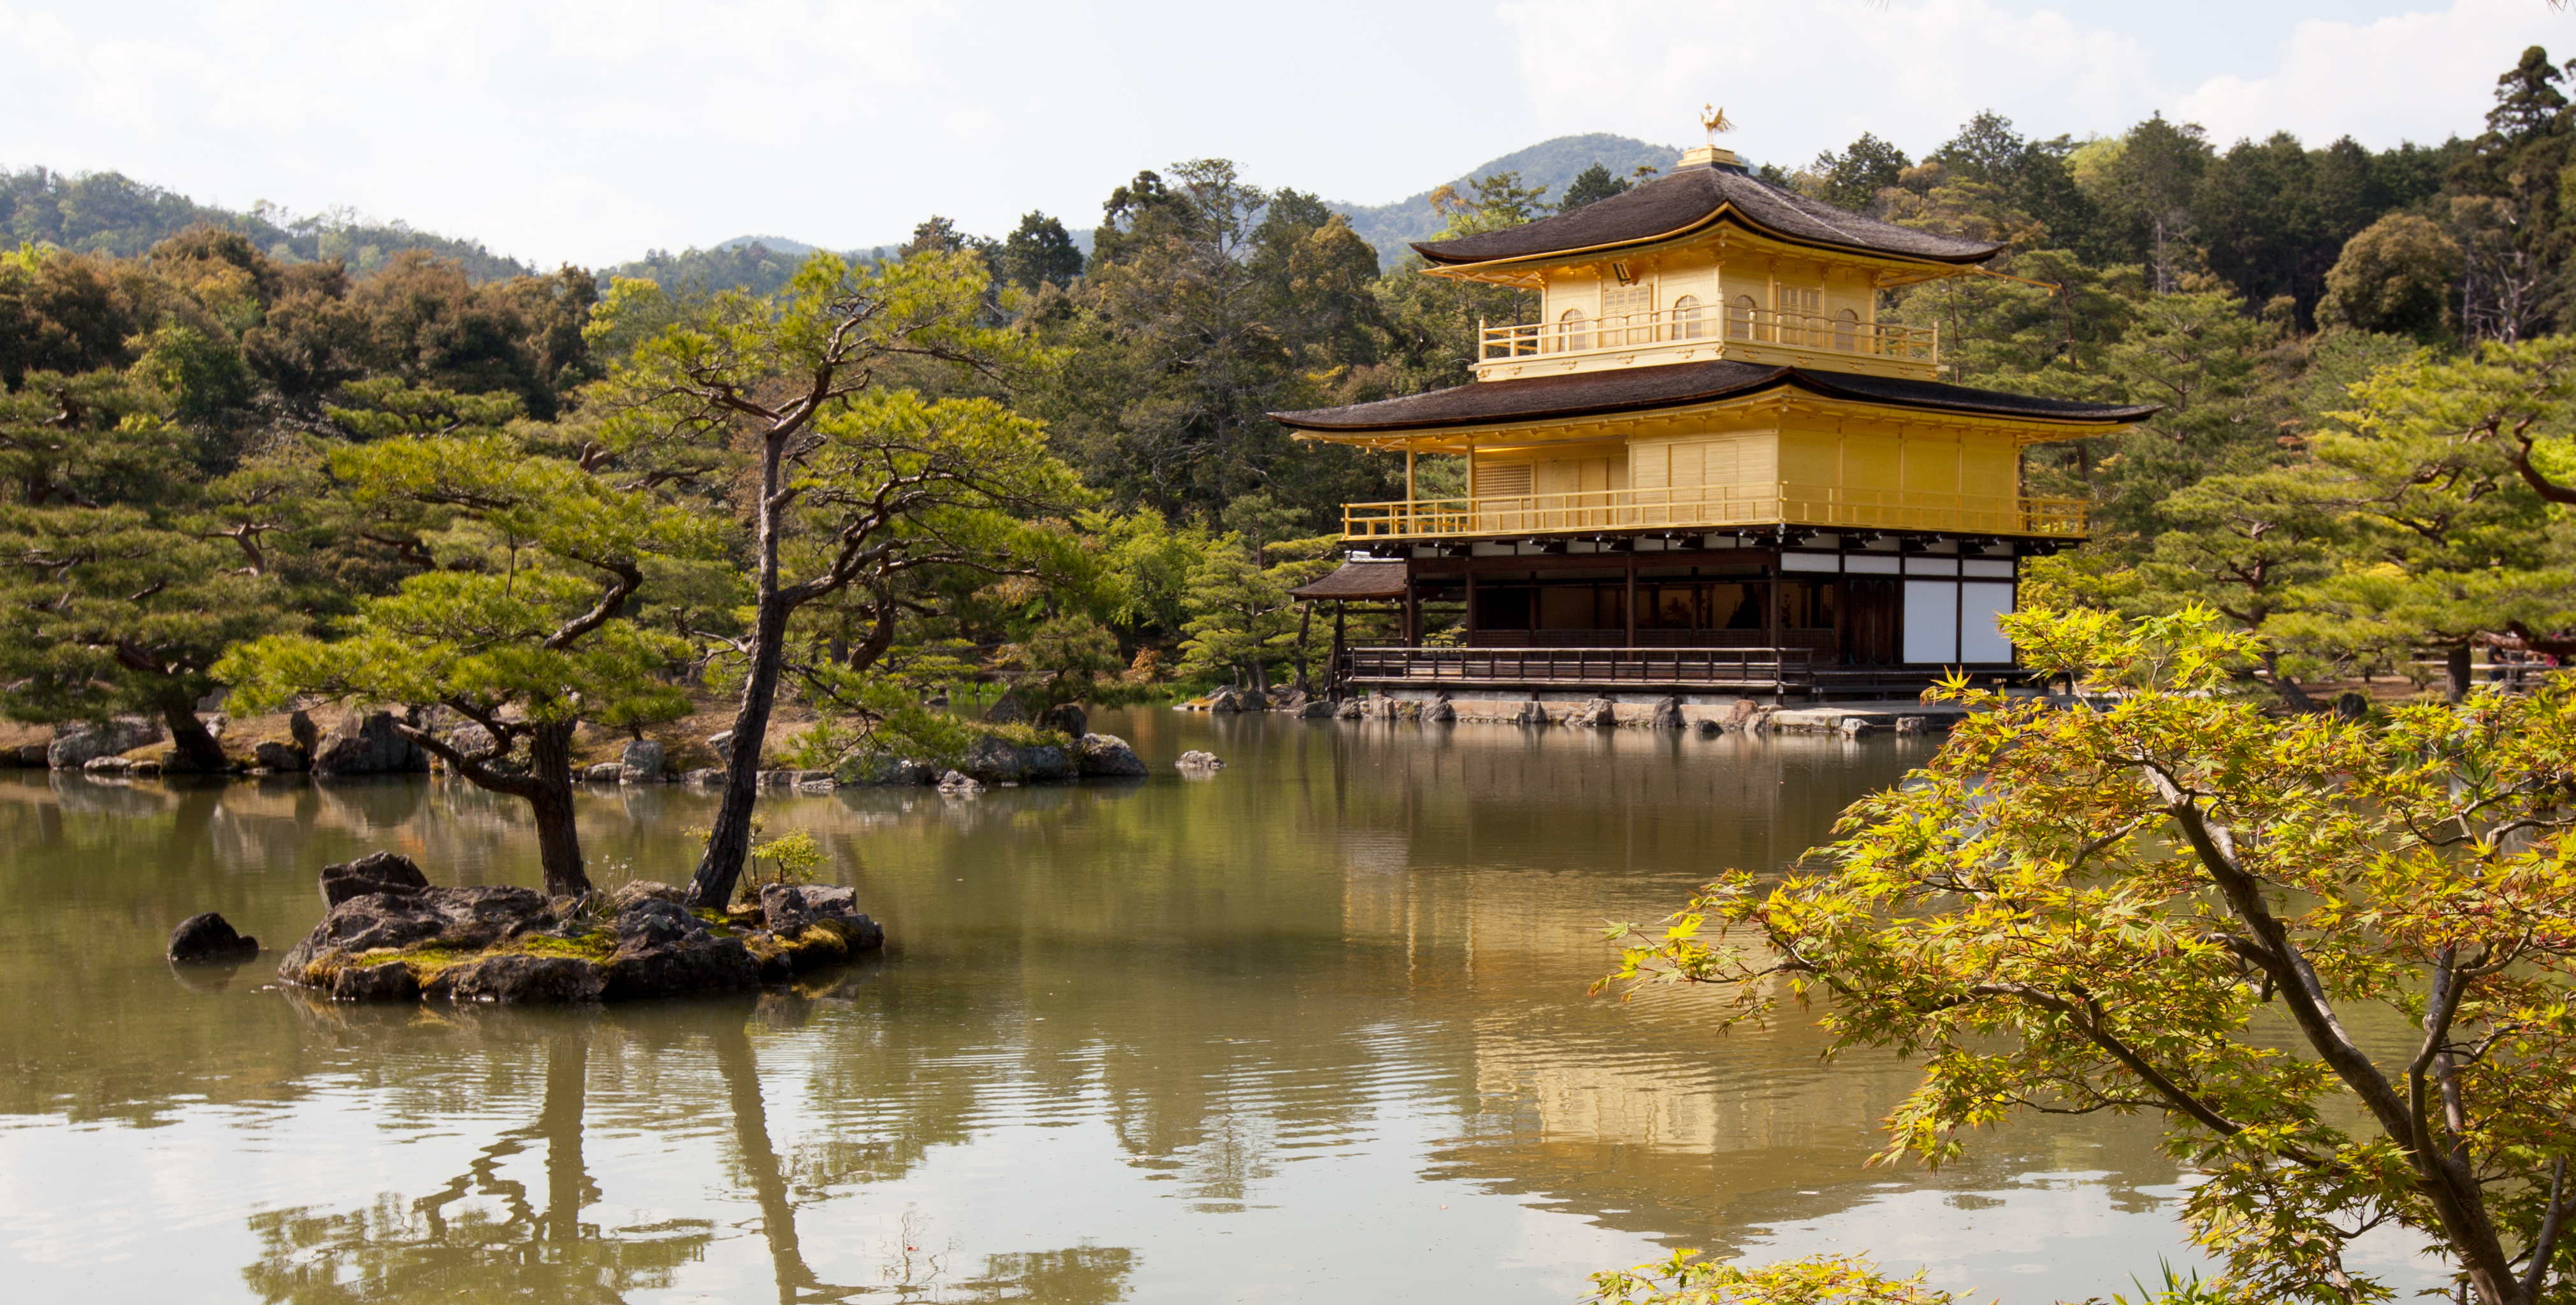 Kyoto Tower and the Golden Pavilion